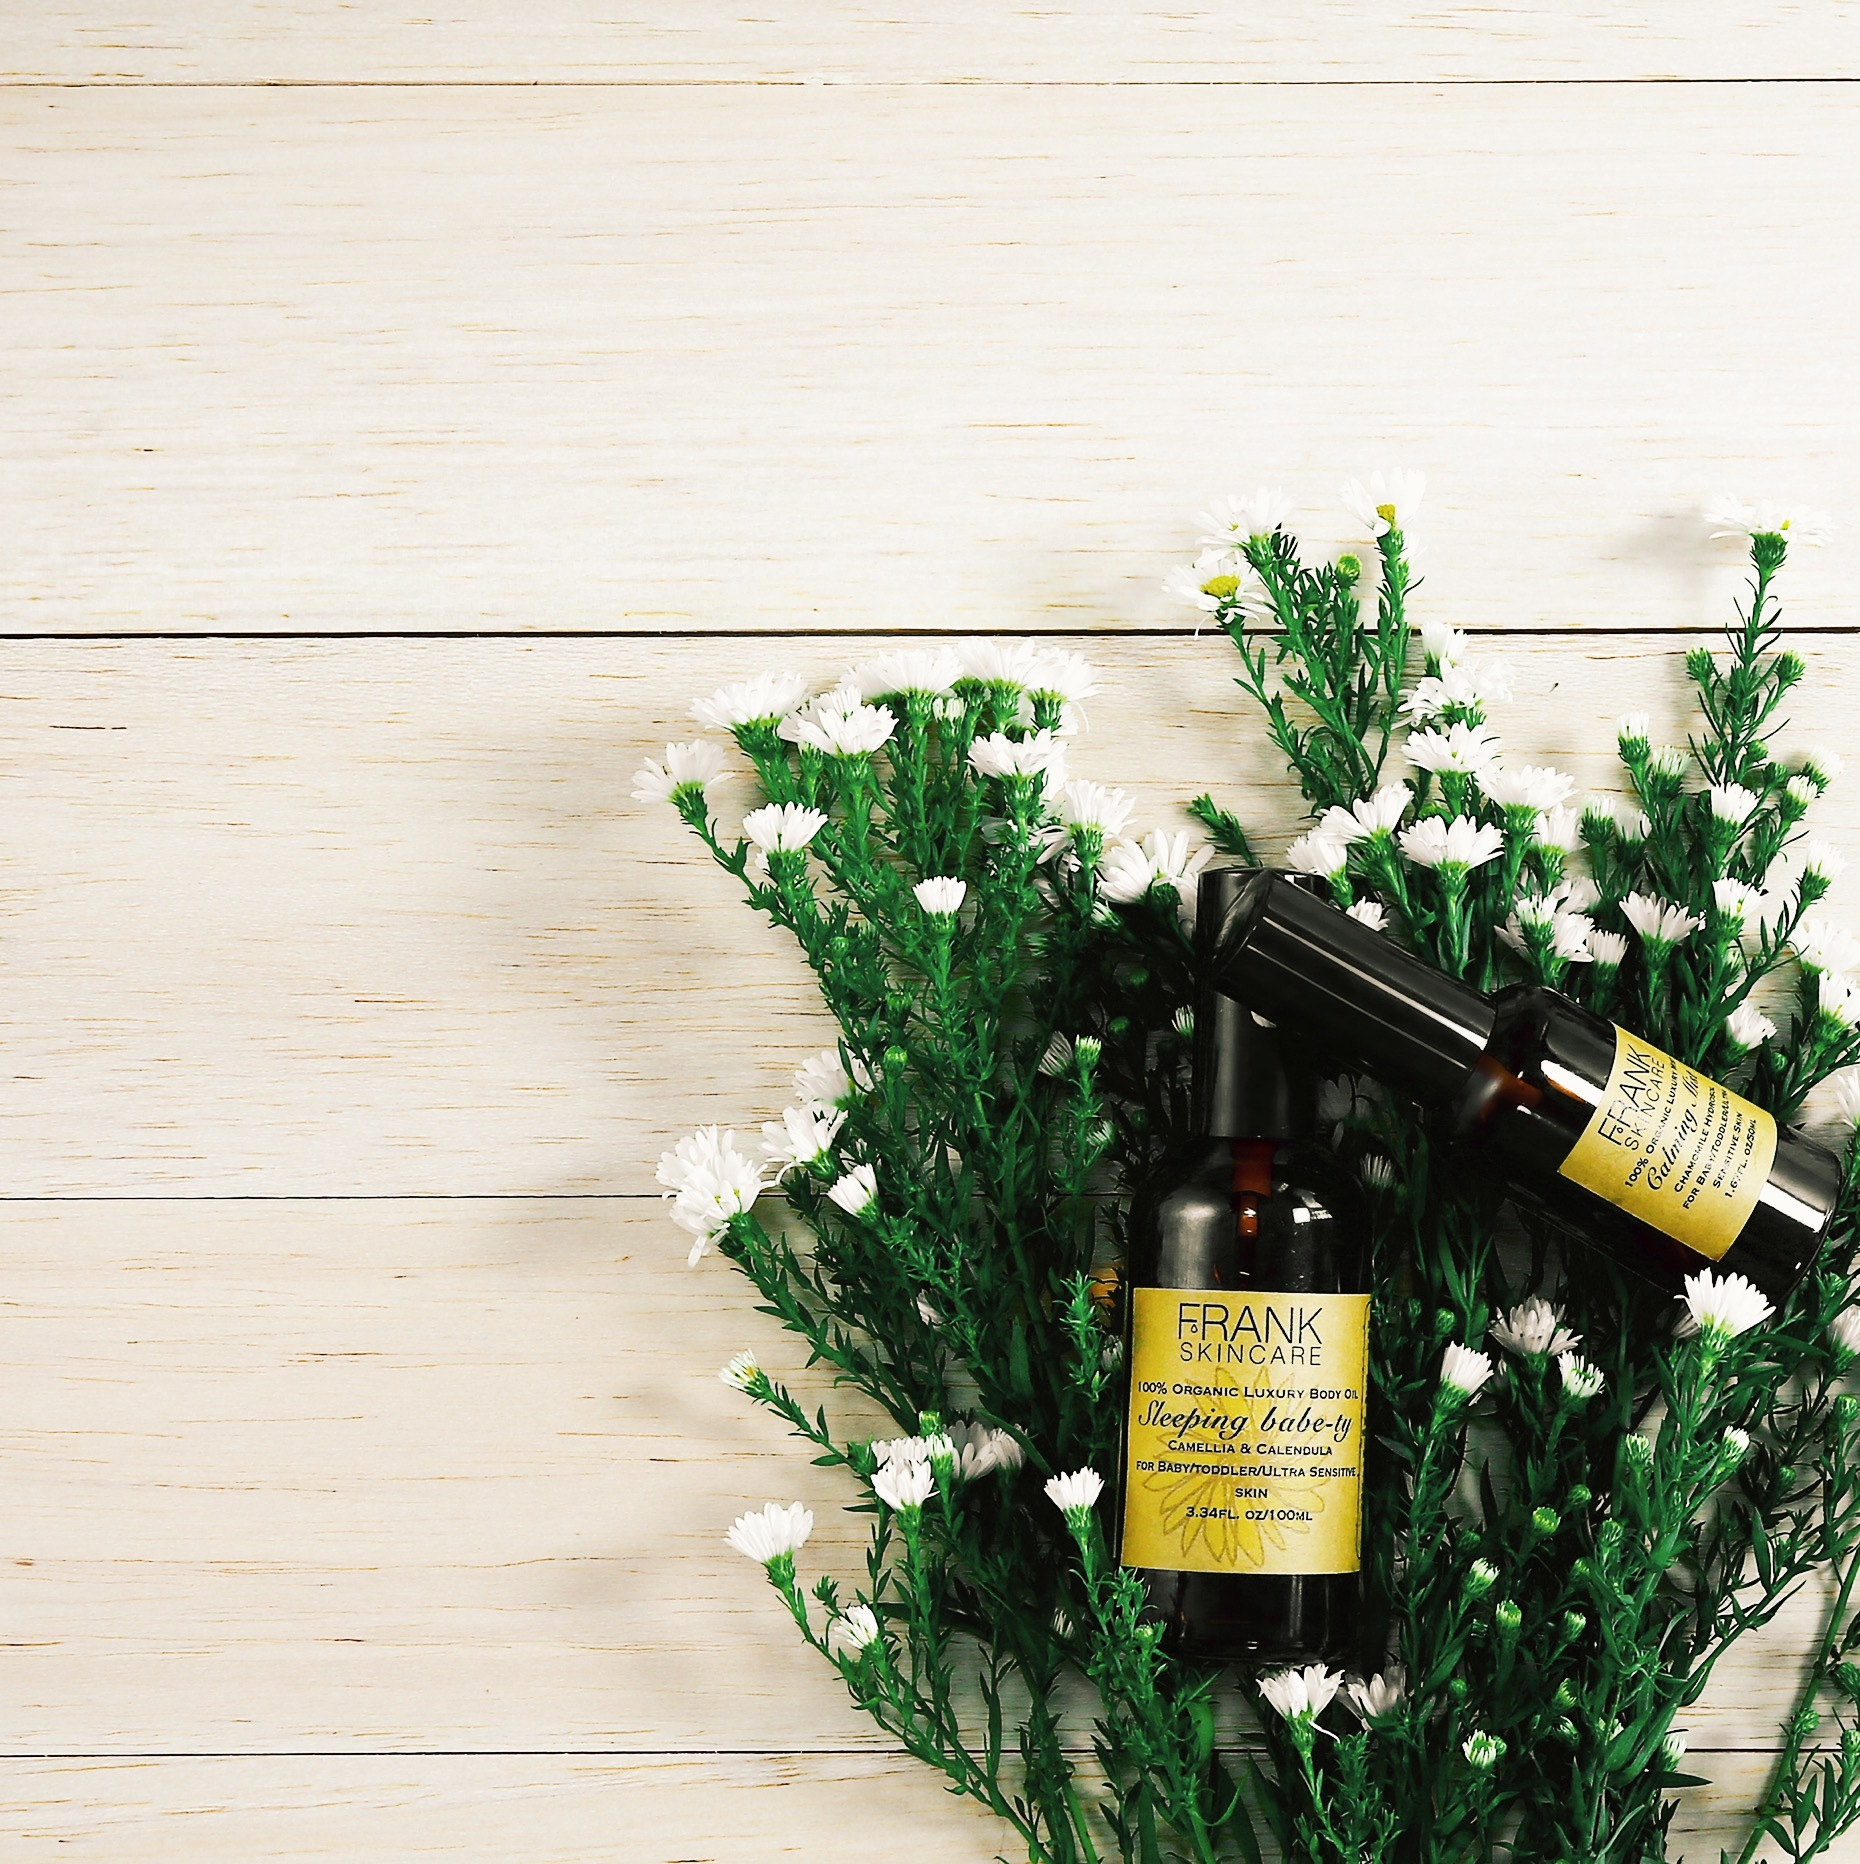 Best local organic beauty brands